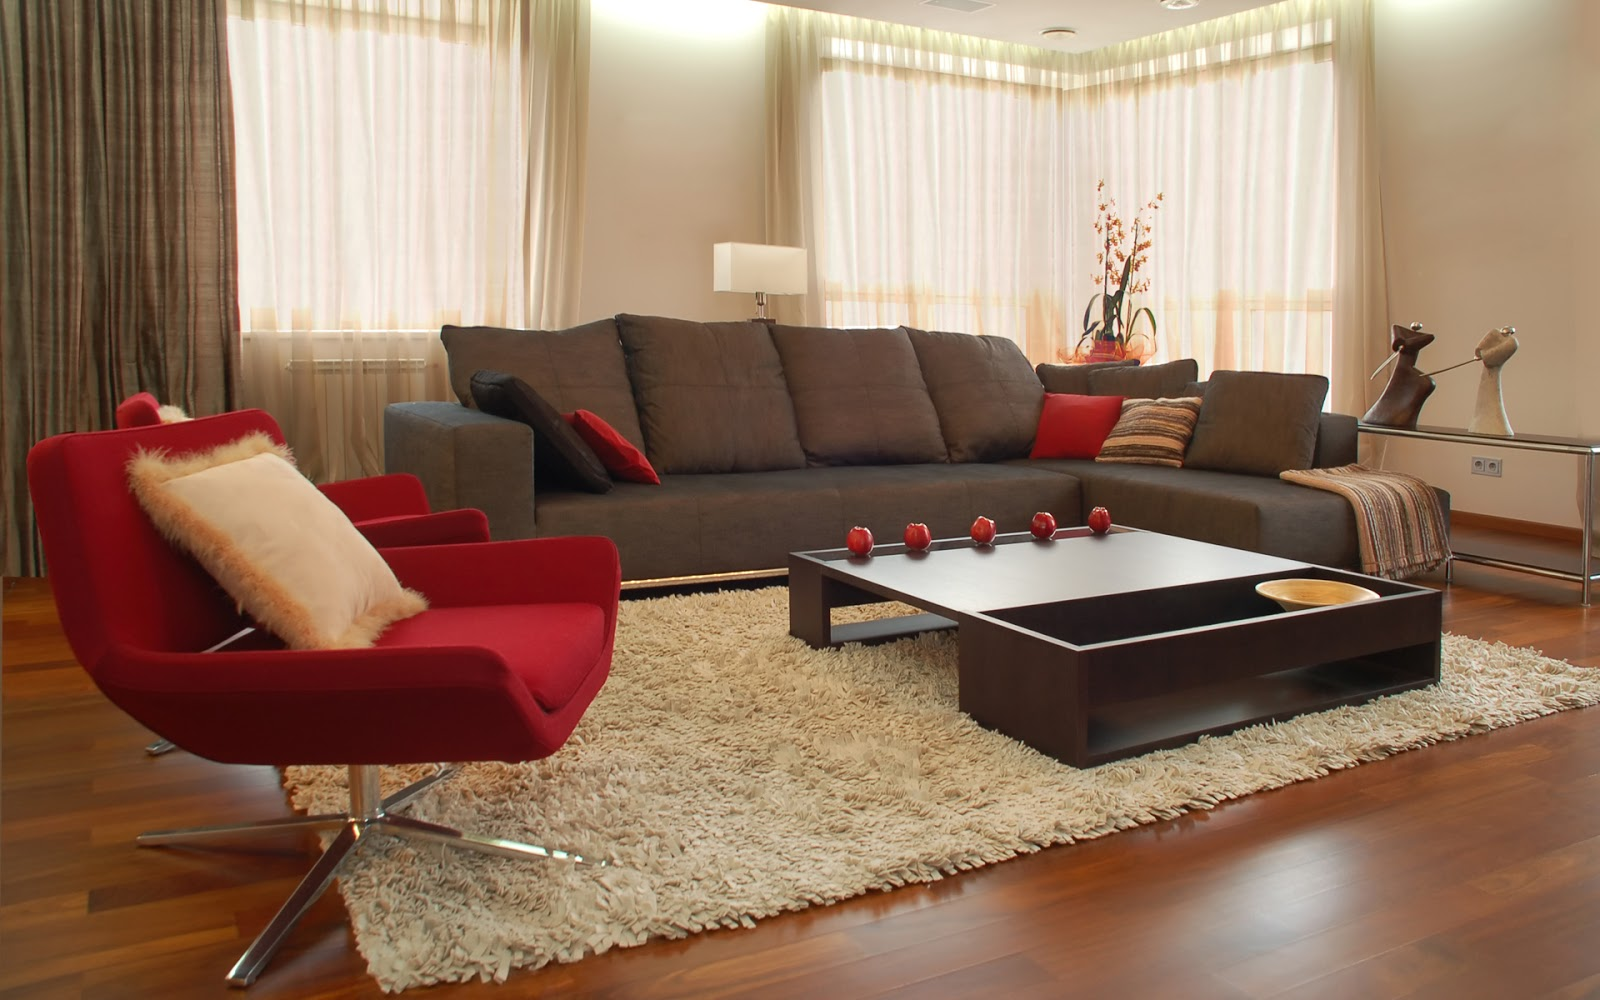 Living Room House Decorations Ideas house decorating ideas on a budget best inspiring interior budget